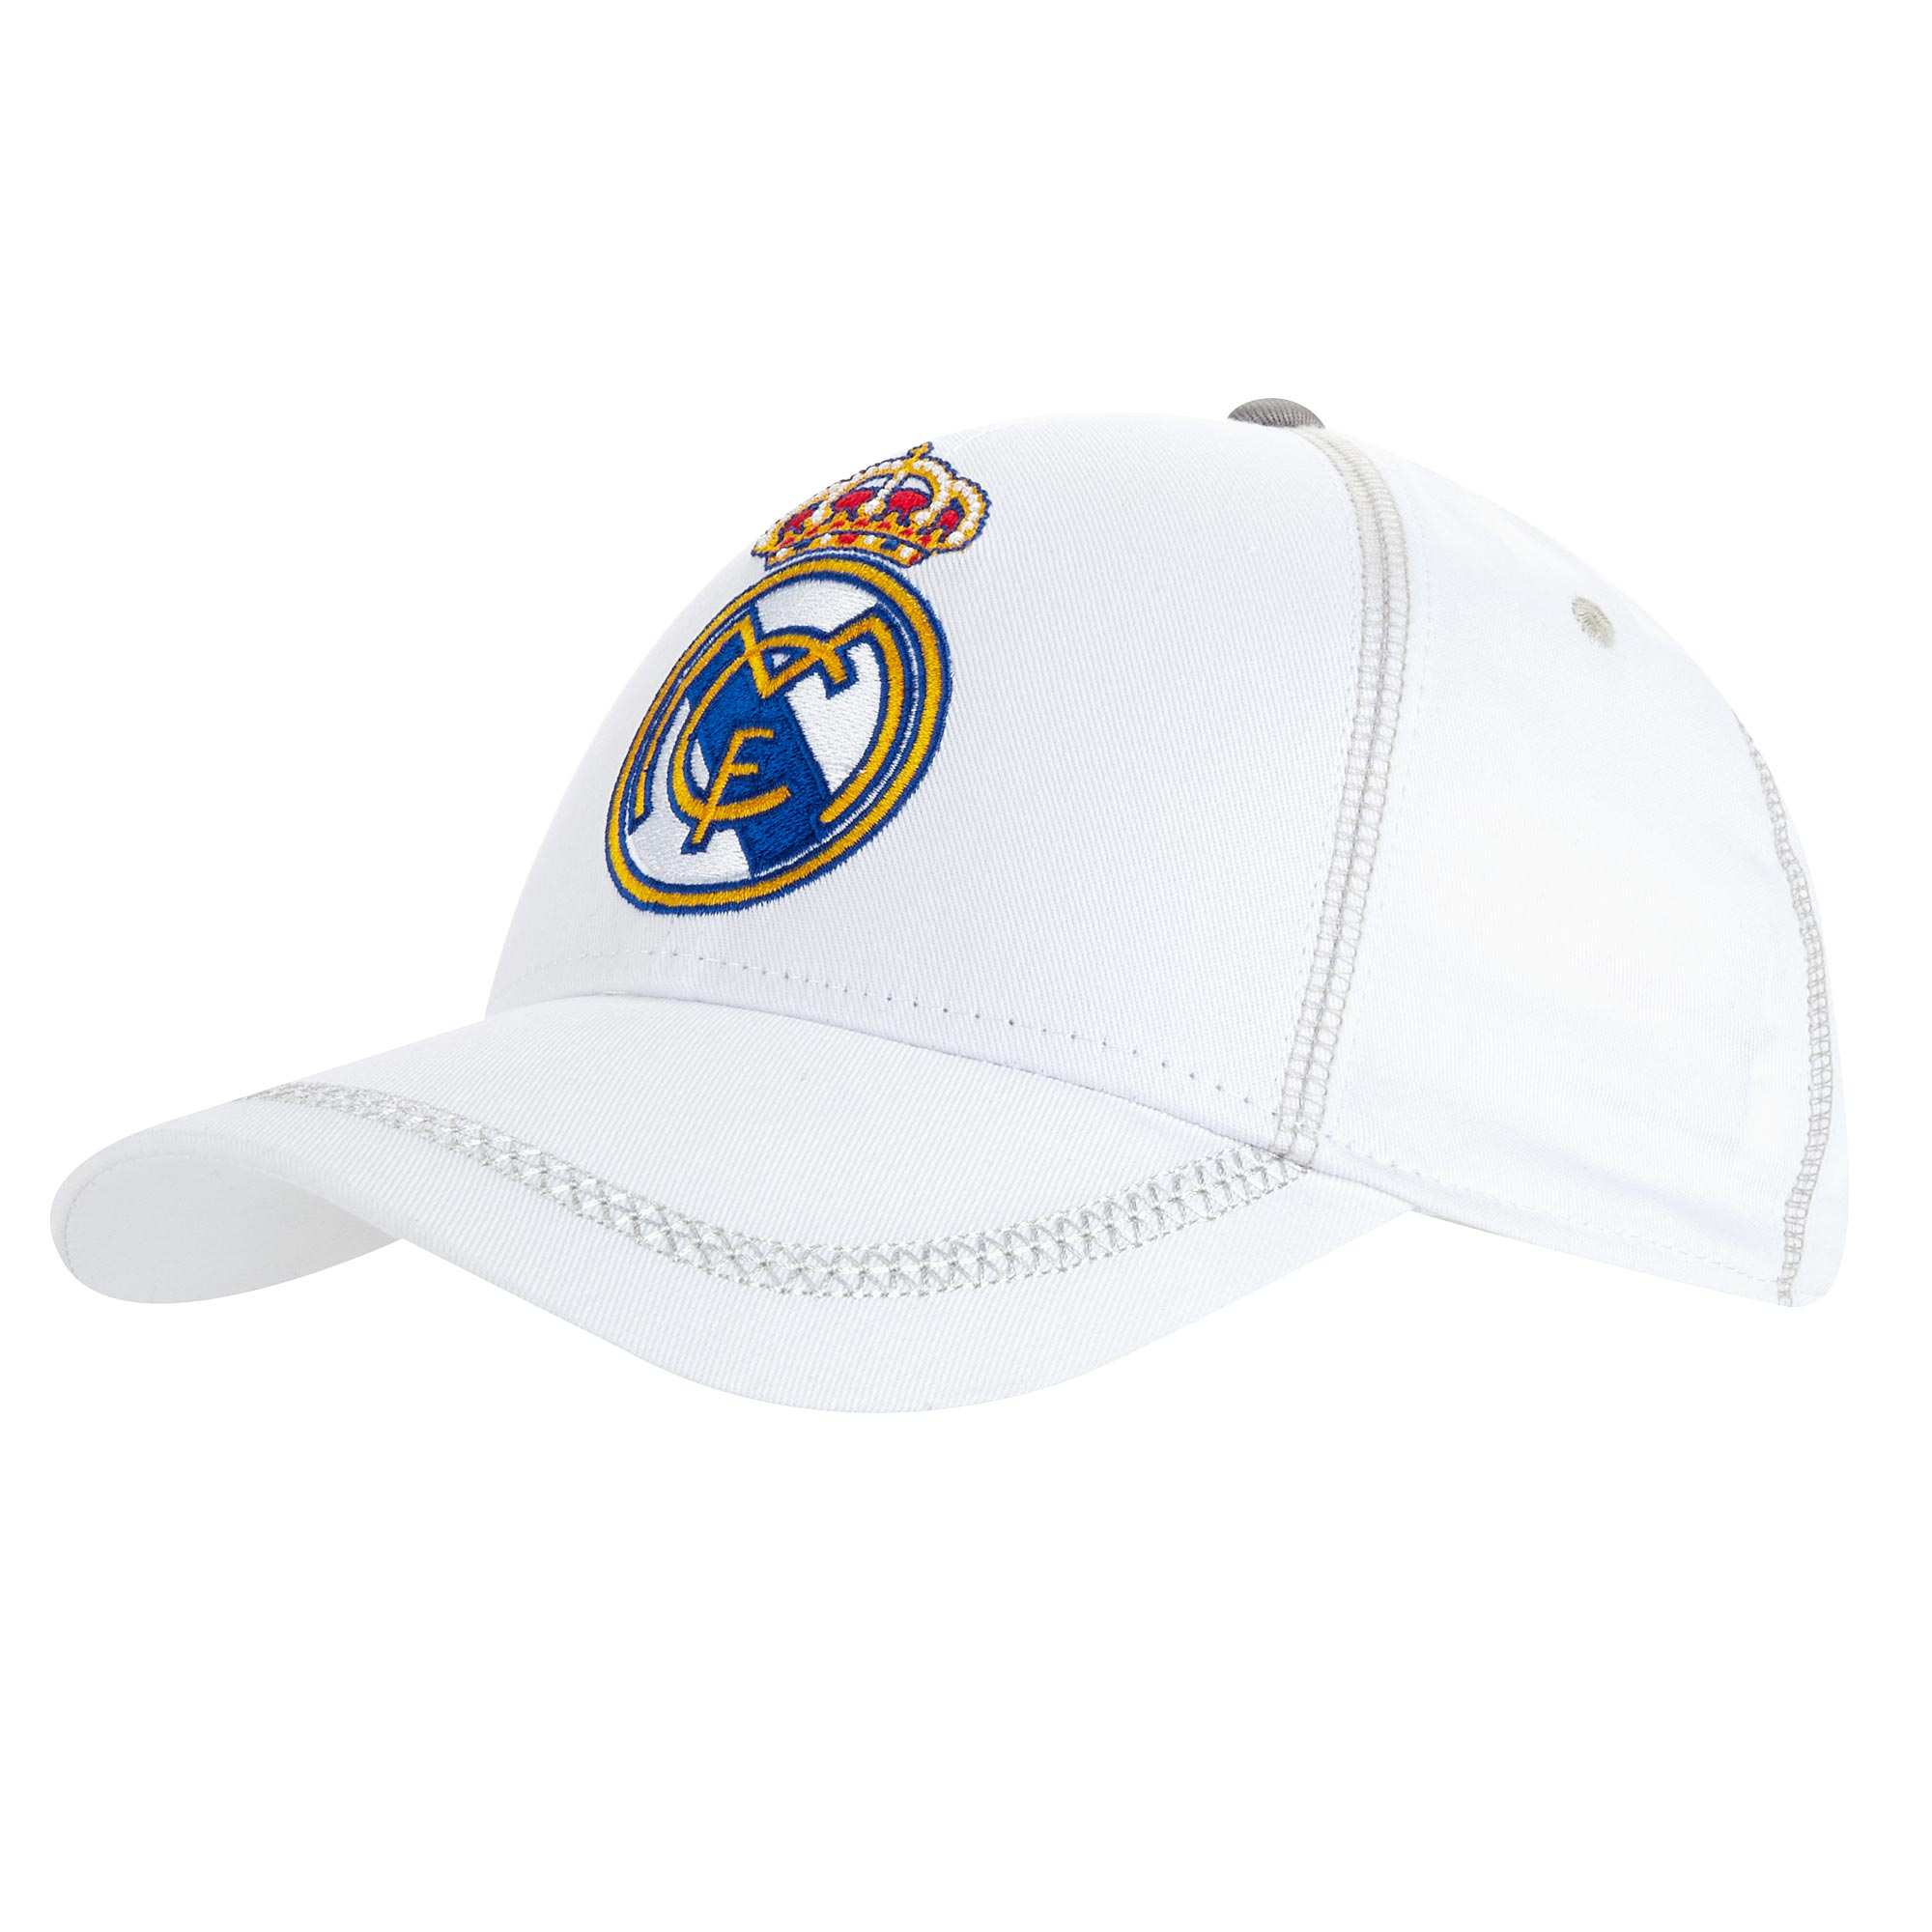 Casquette de fan Real Madrid - Blanc - Adulte